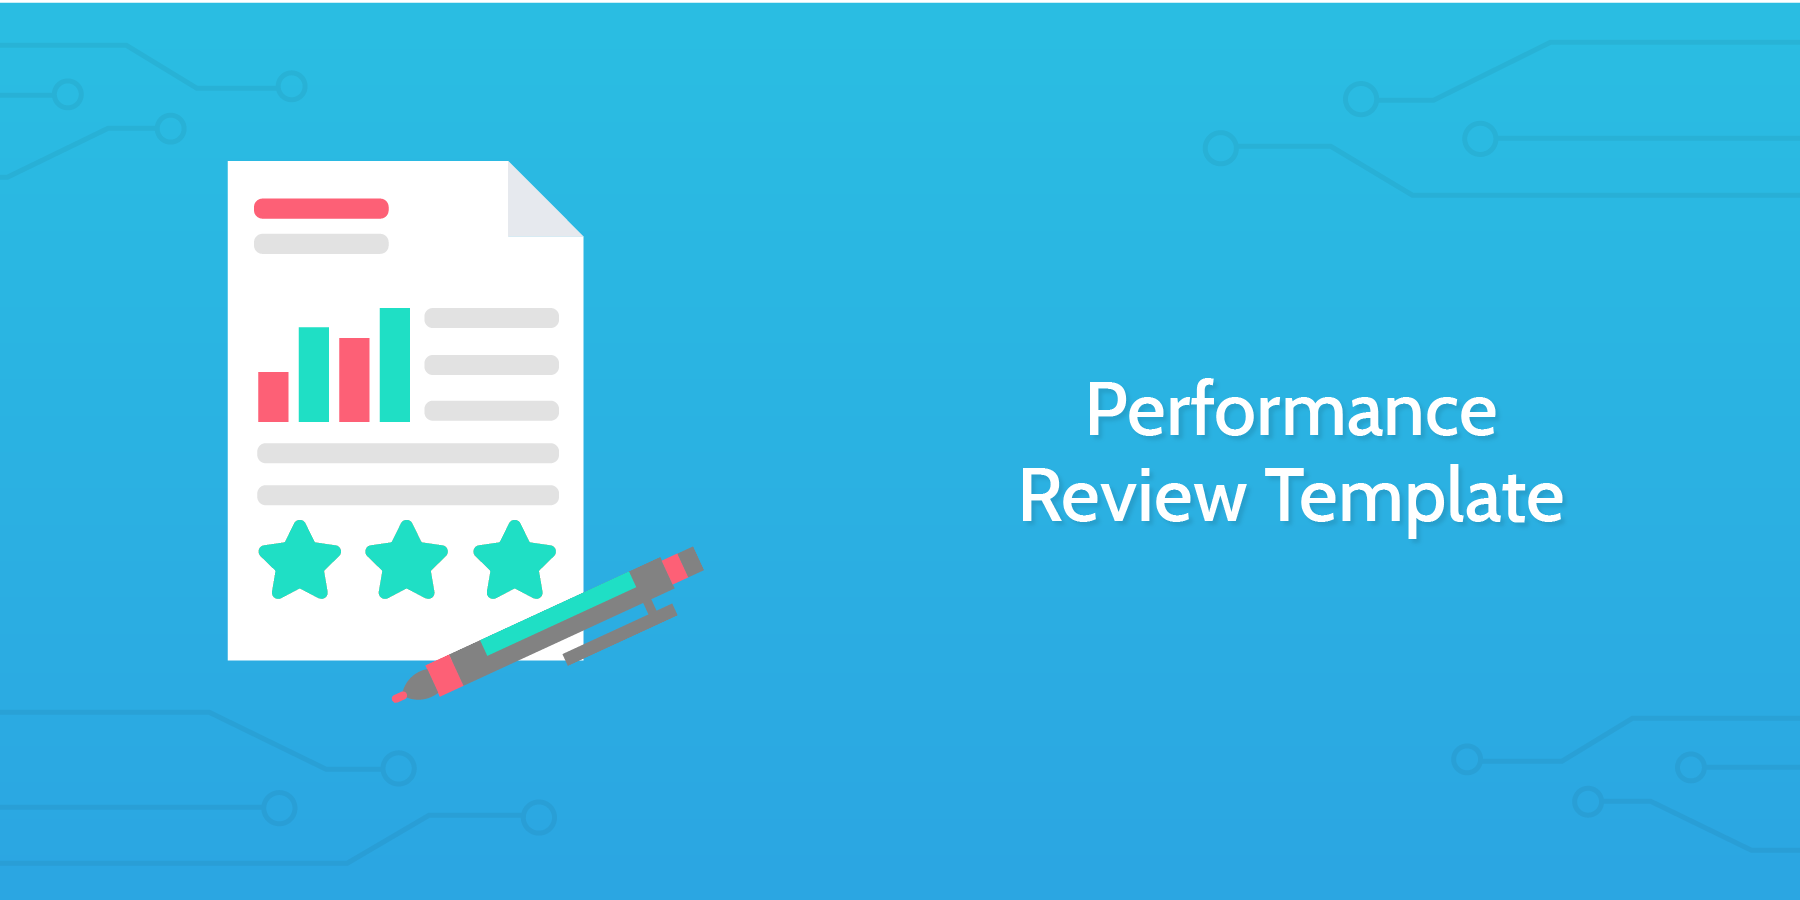 Performance Review Template - Introduction